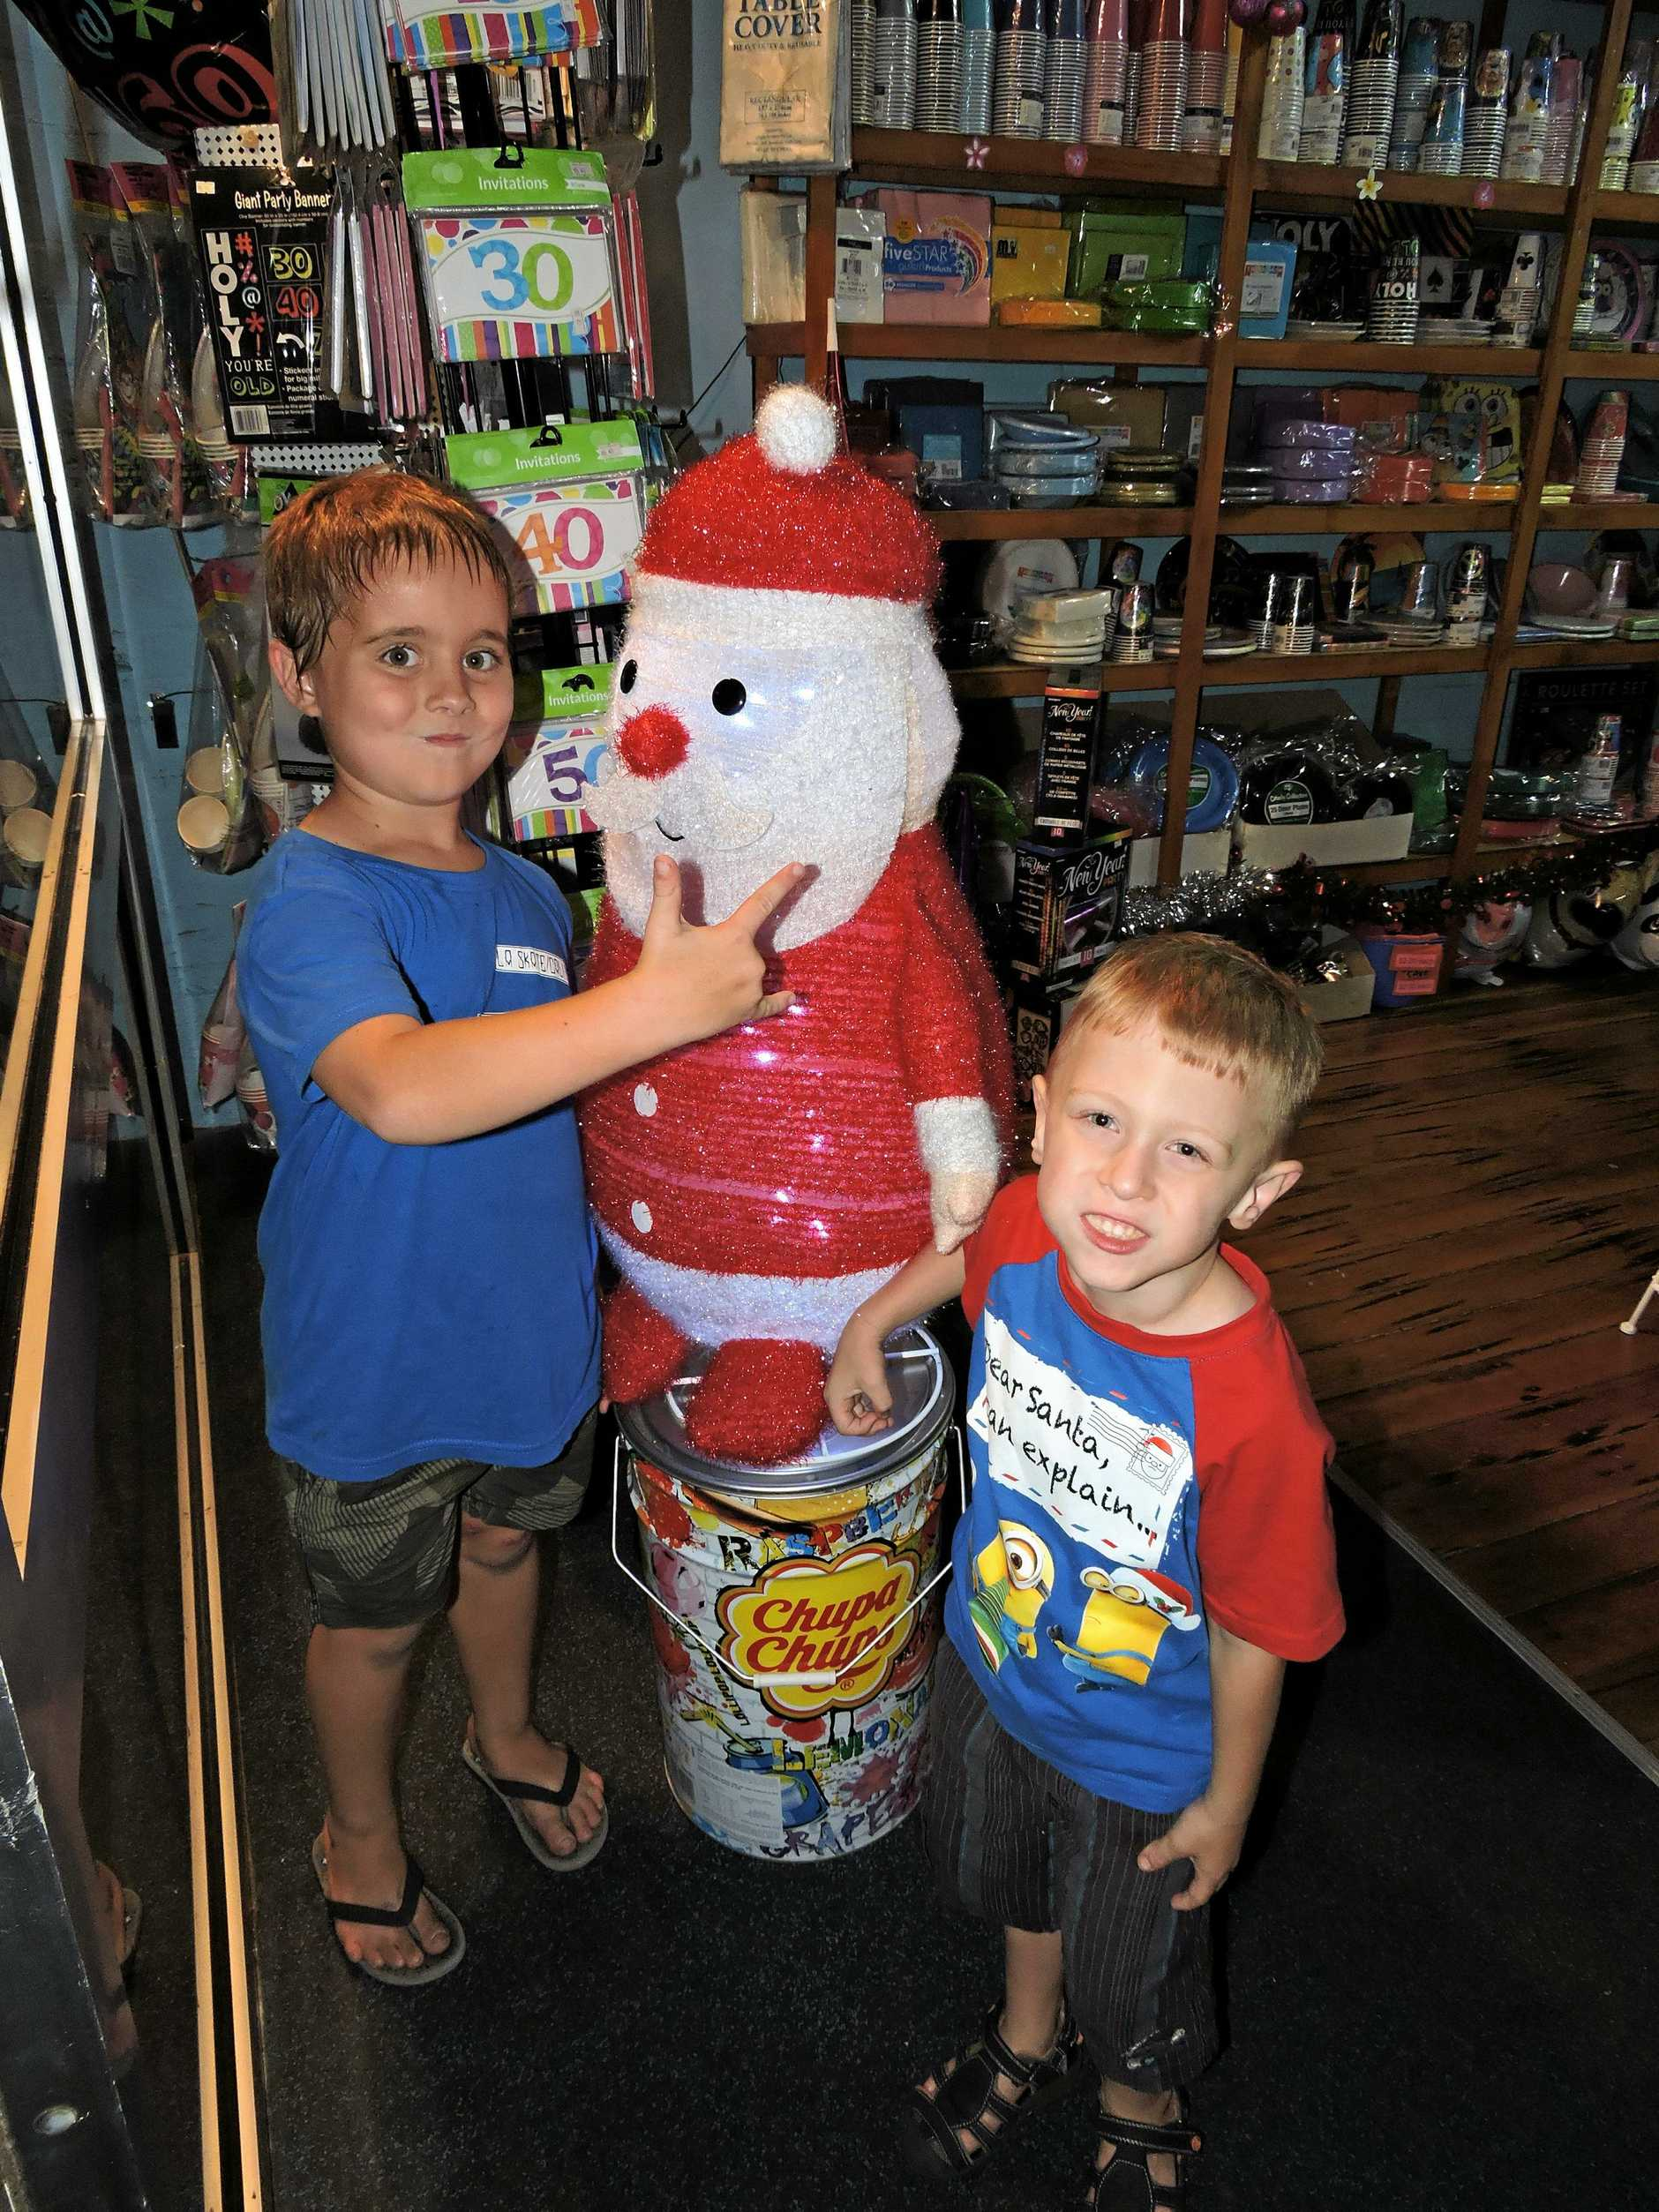 Checking out the decorations and the lollies in The Land of Sweets as is kept its doors open for the Mary Christmas CBD Street Party were Declan Bonnor, 6, and Reuben Bradford, 4 (right).